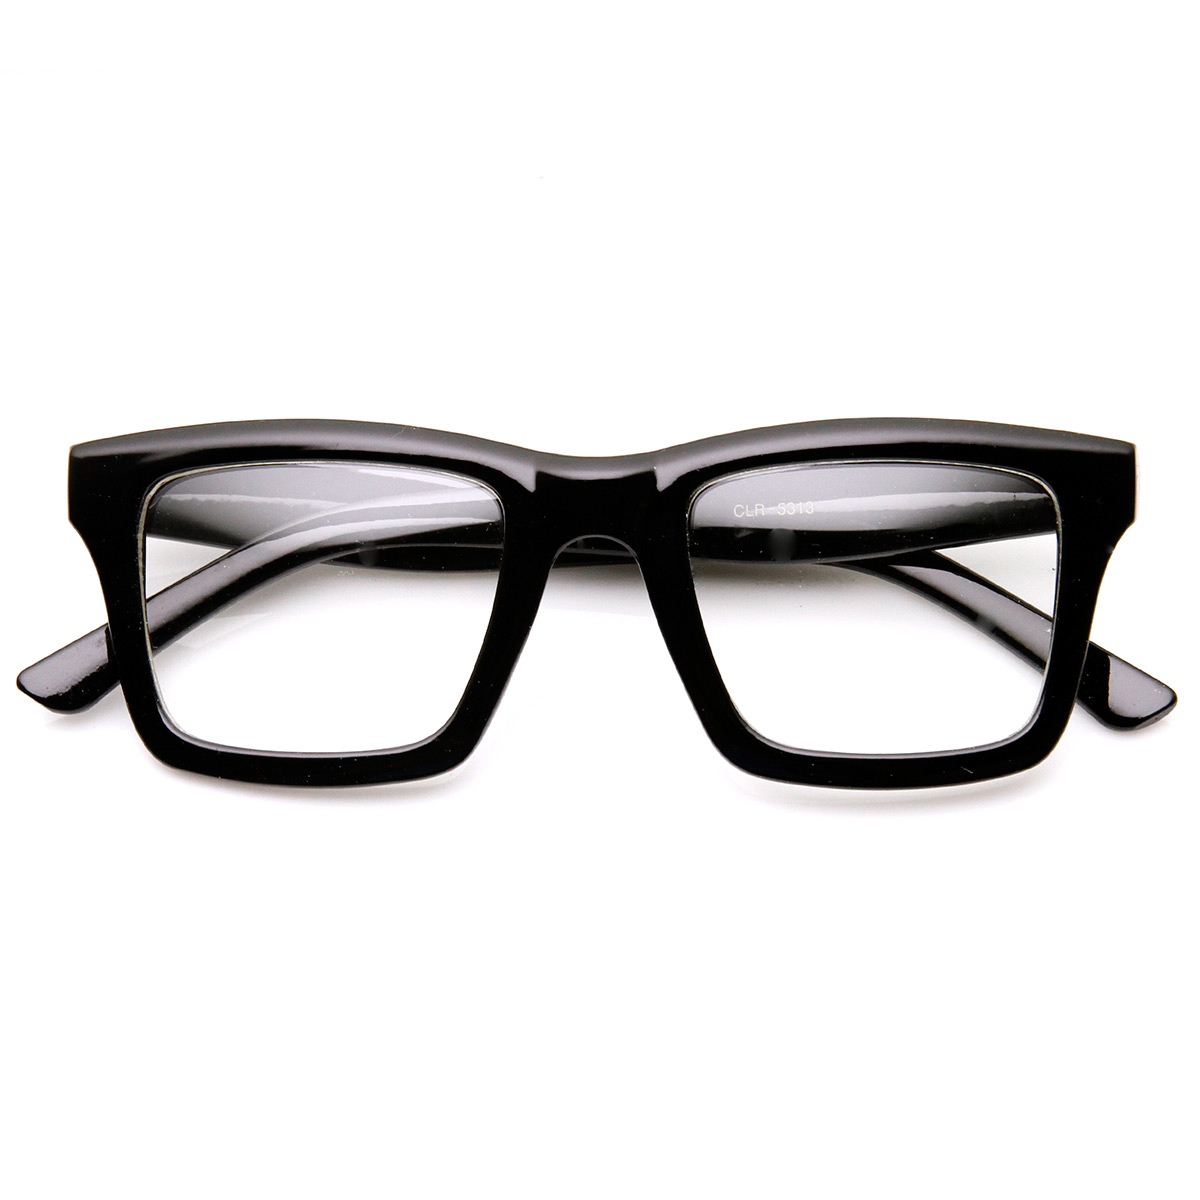 Square Framed Fashion Glasses : Modern Fashion Dapper Square Bold Frame Clear Lens Glasses ...